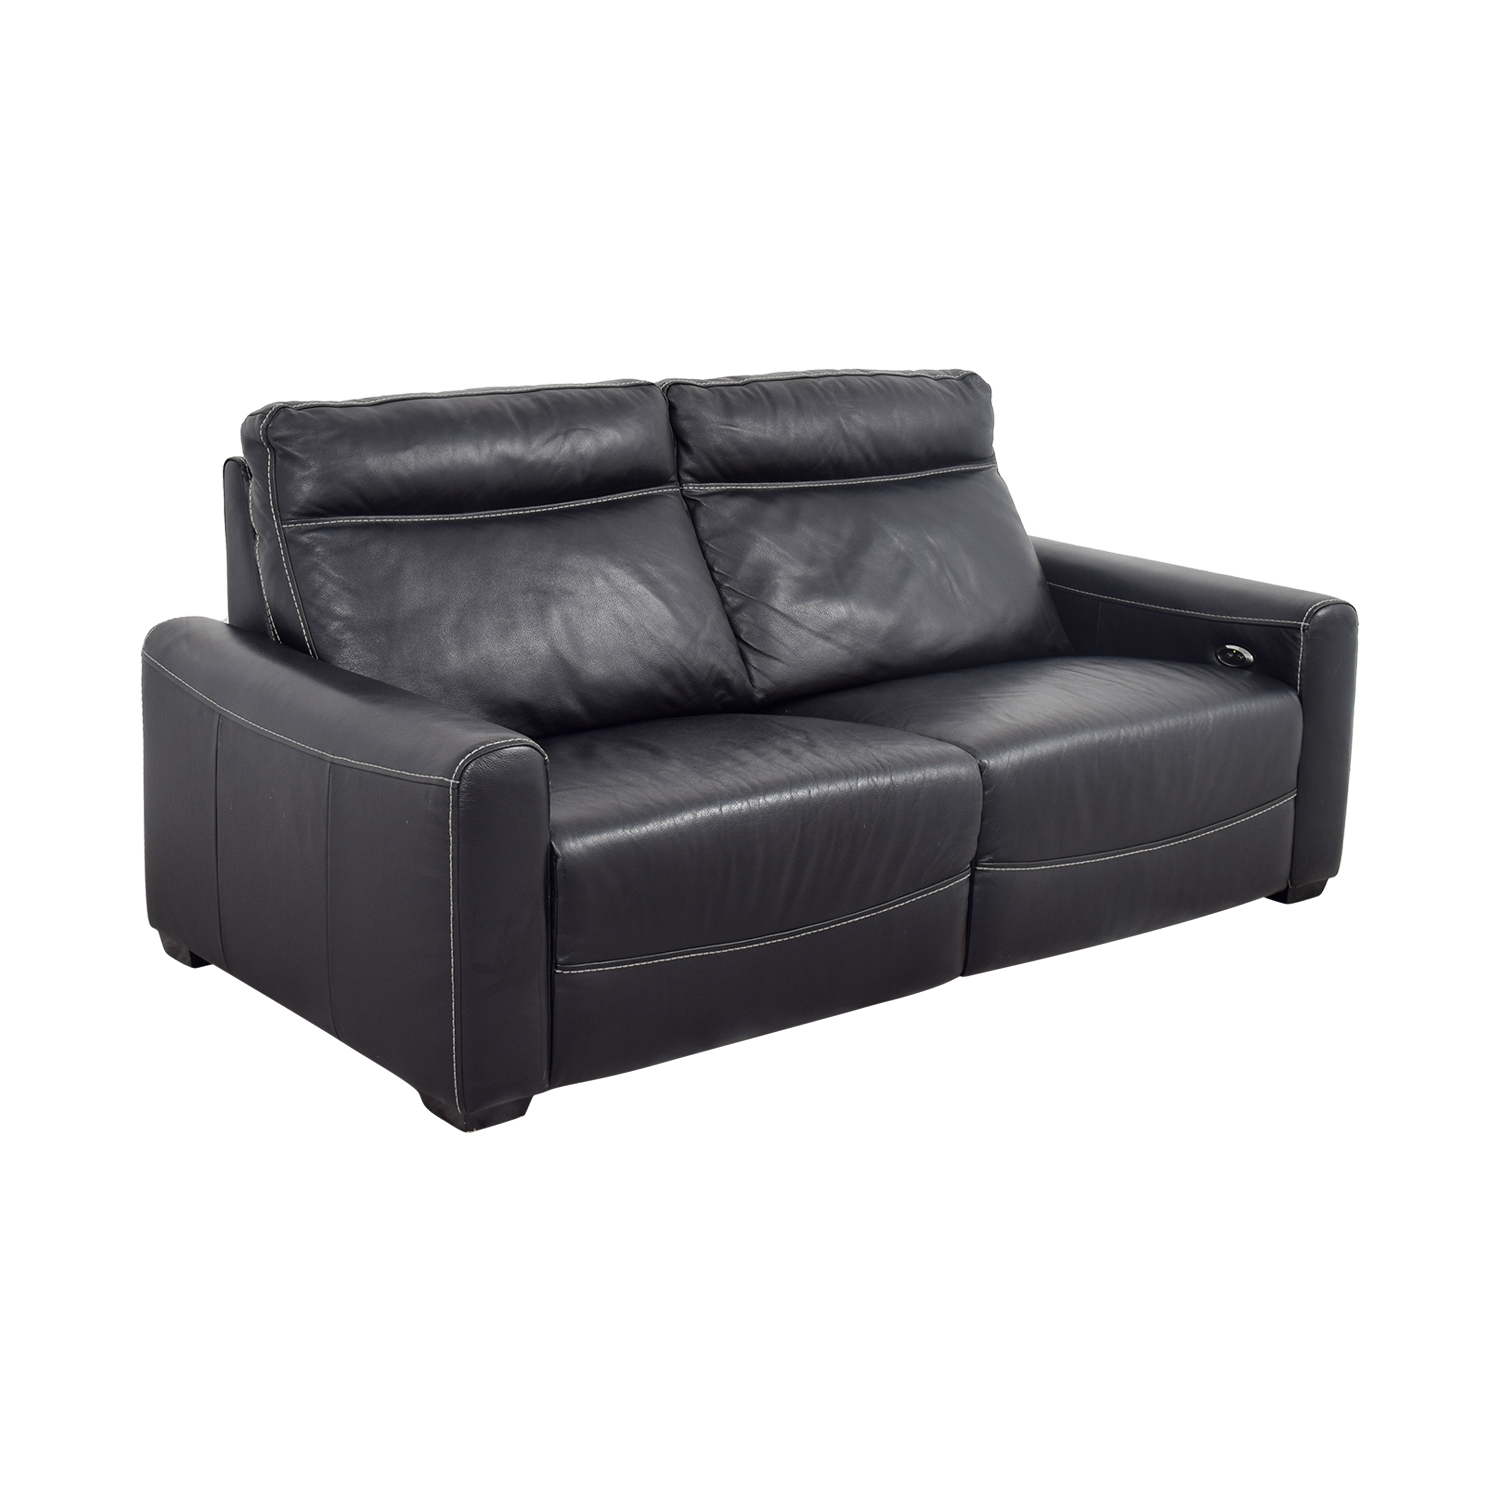 Macy's Macy's Black Leather Reclining Sofa / Sofas